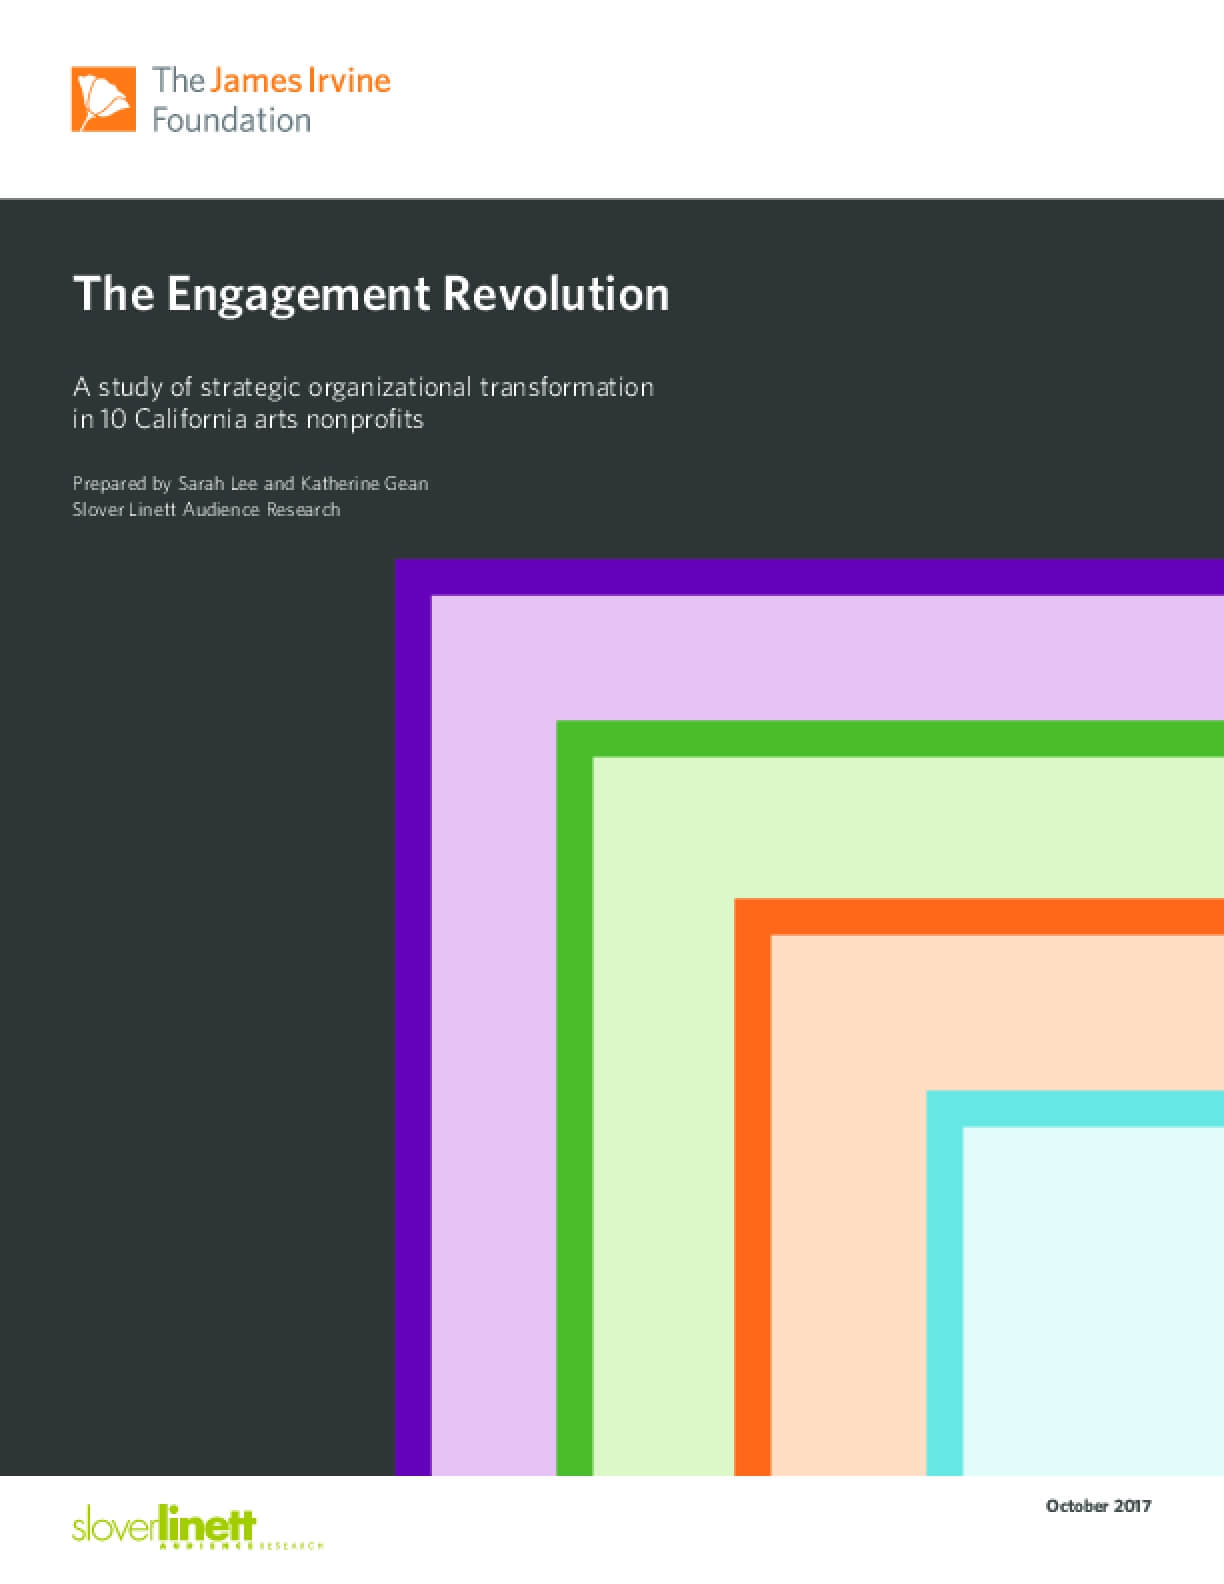 The Engagement Revolution: A Study of Strategic Organizational Transformation in 10 California Arts Nonprofits